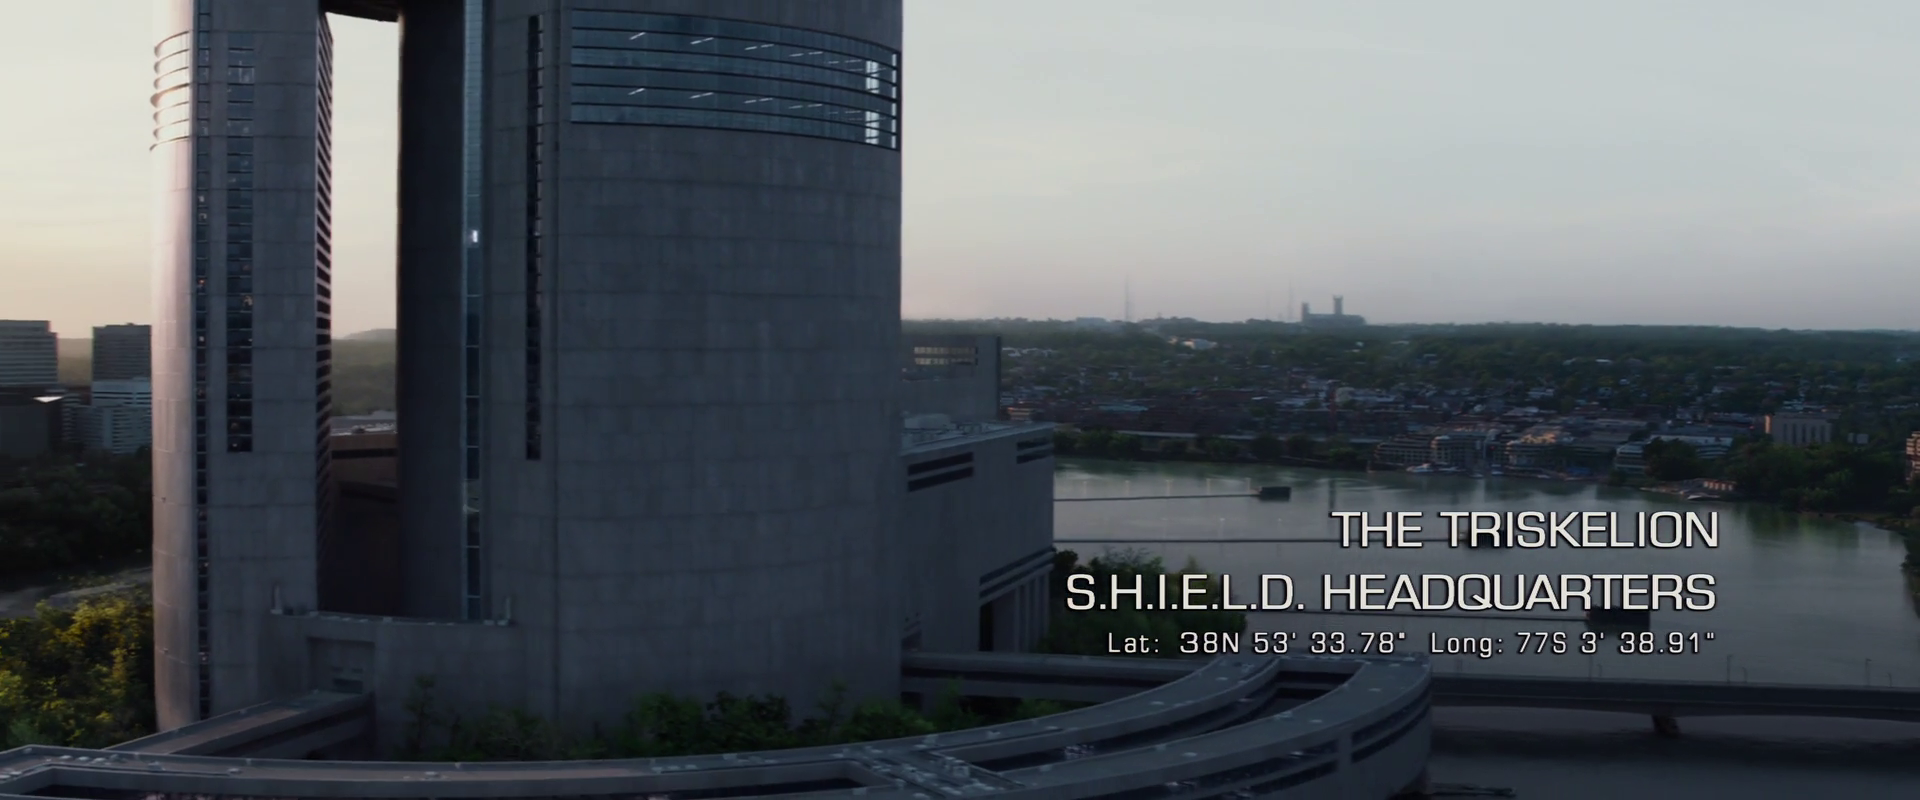 Captain America: Winter Soldier  (2014), Triskelion location specified (by faulty coordinates)